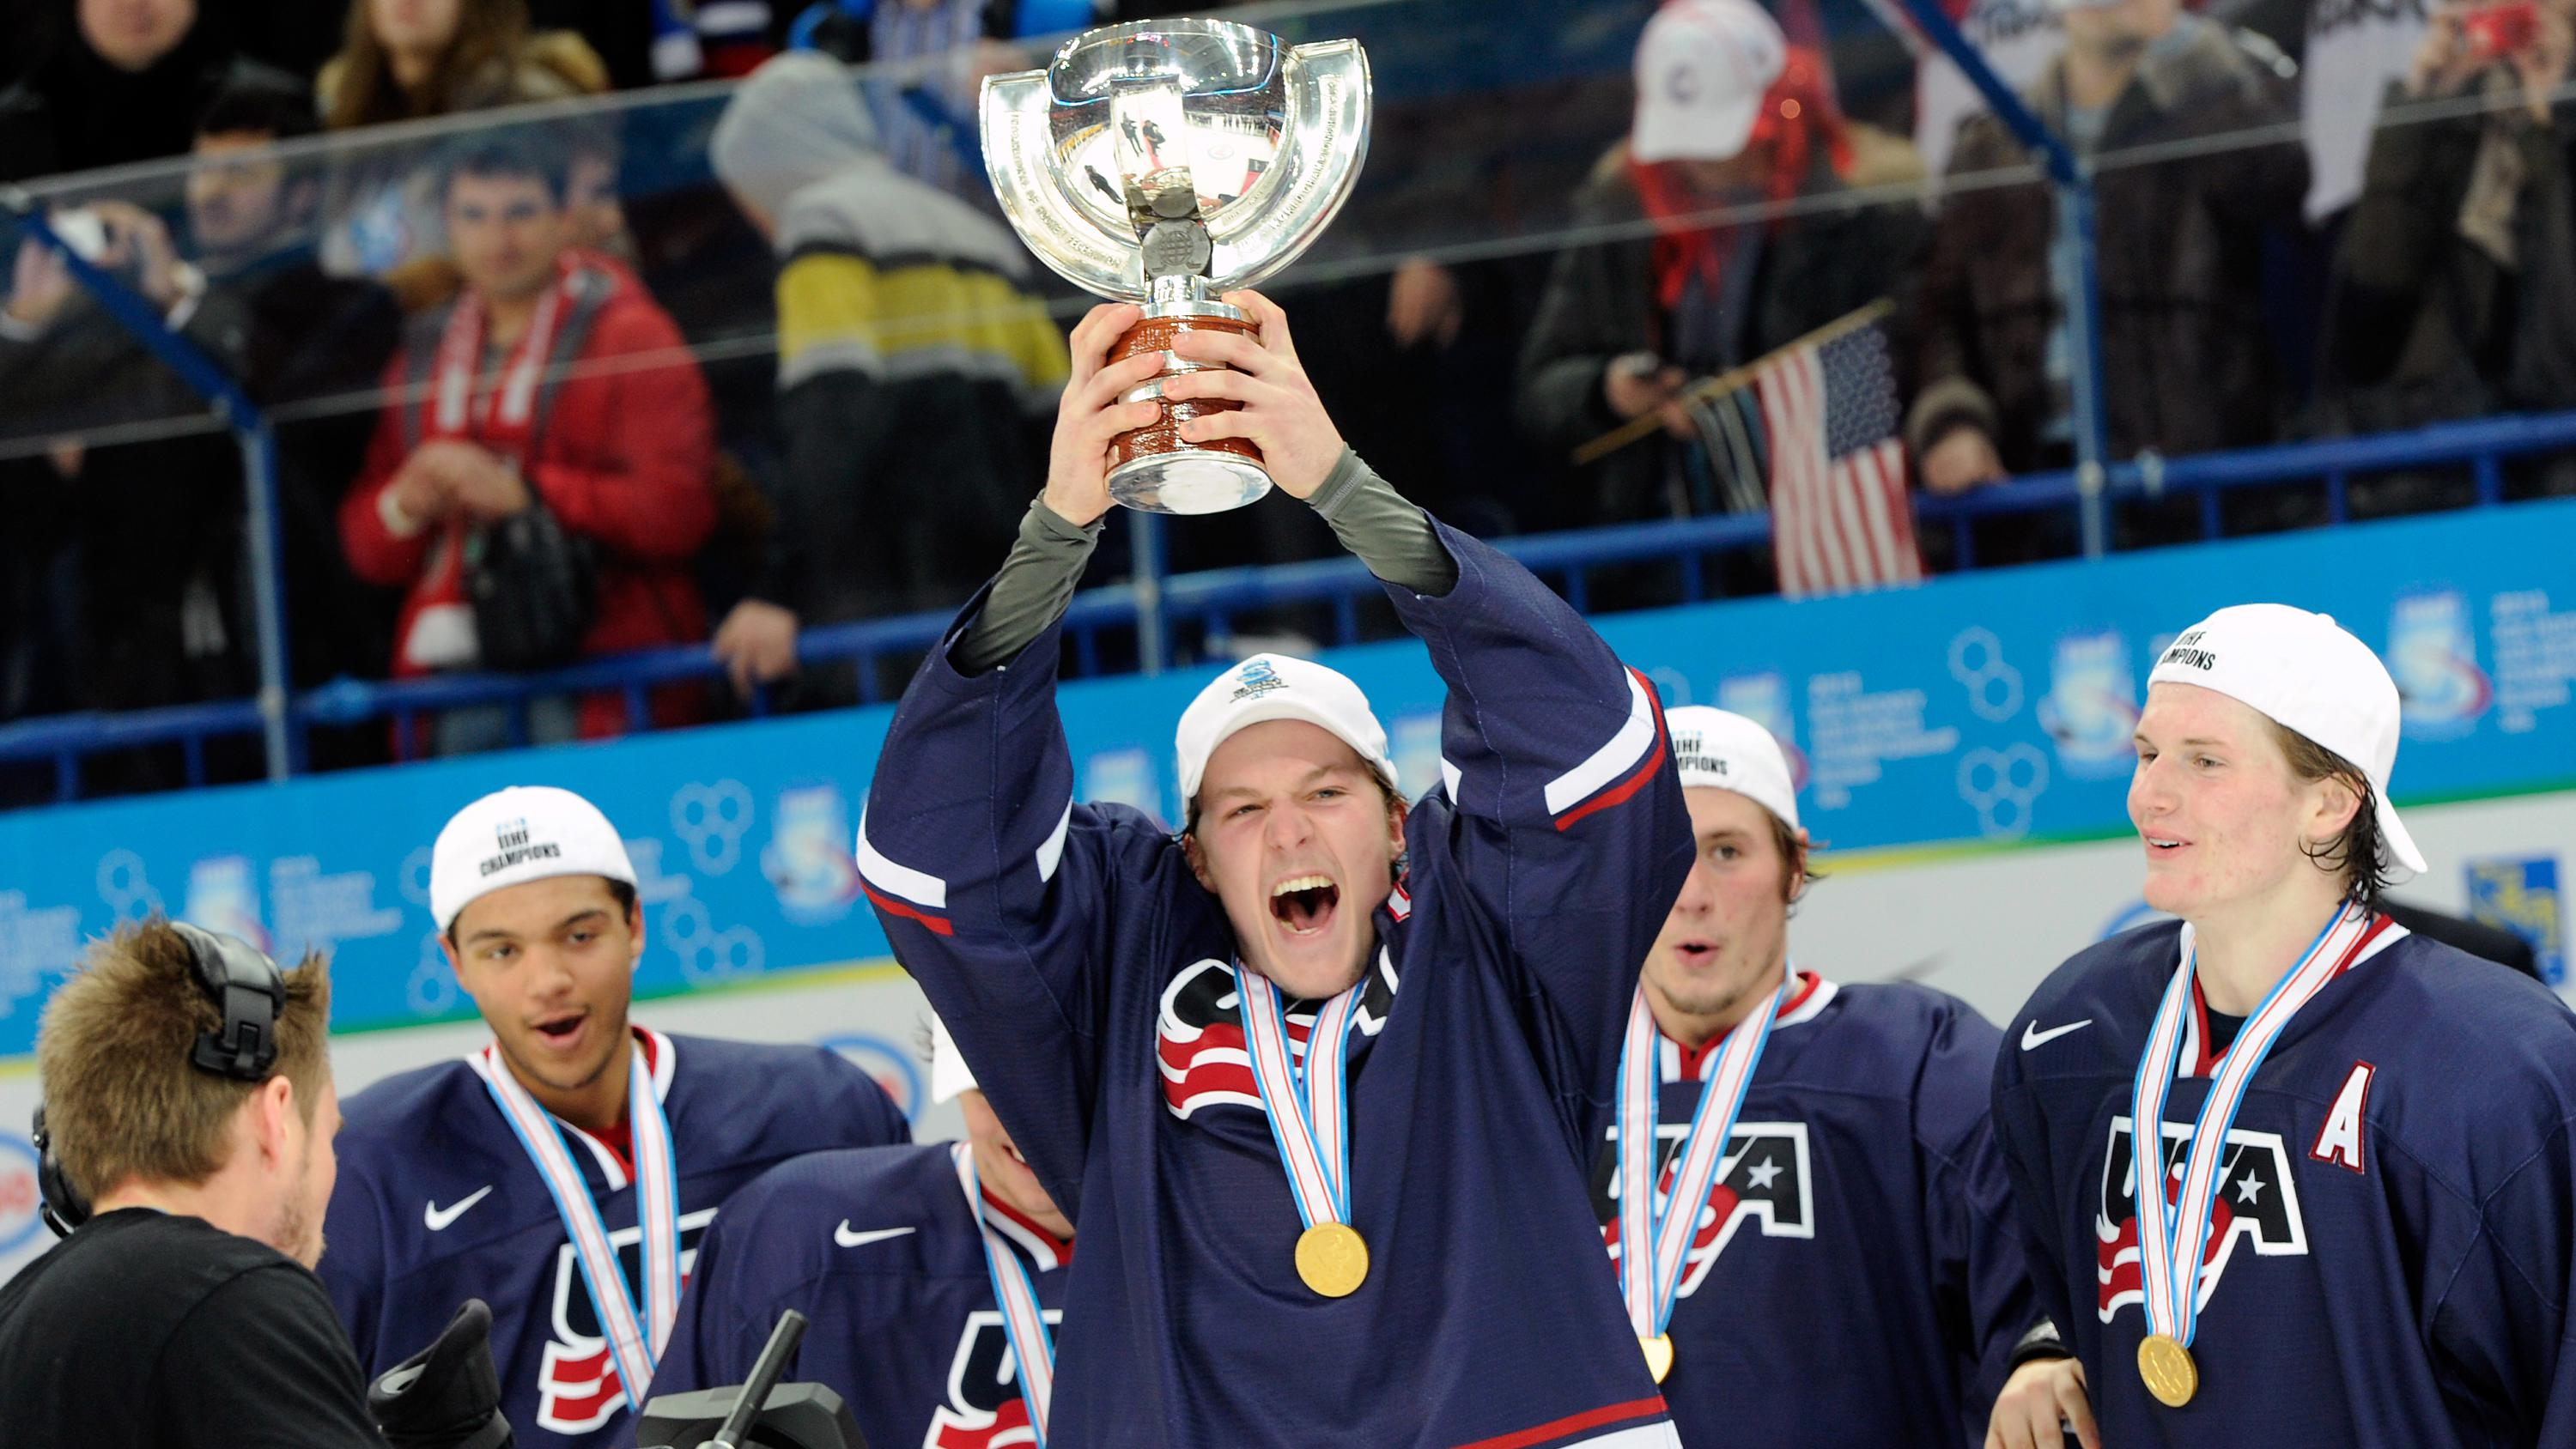 McCabe with the World Junior trophy in 2013